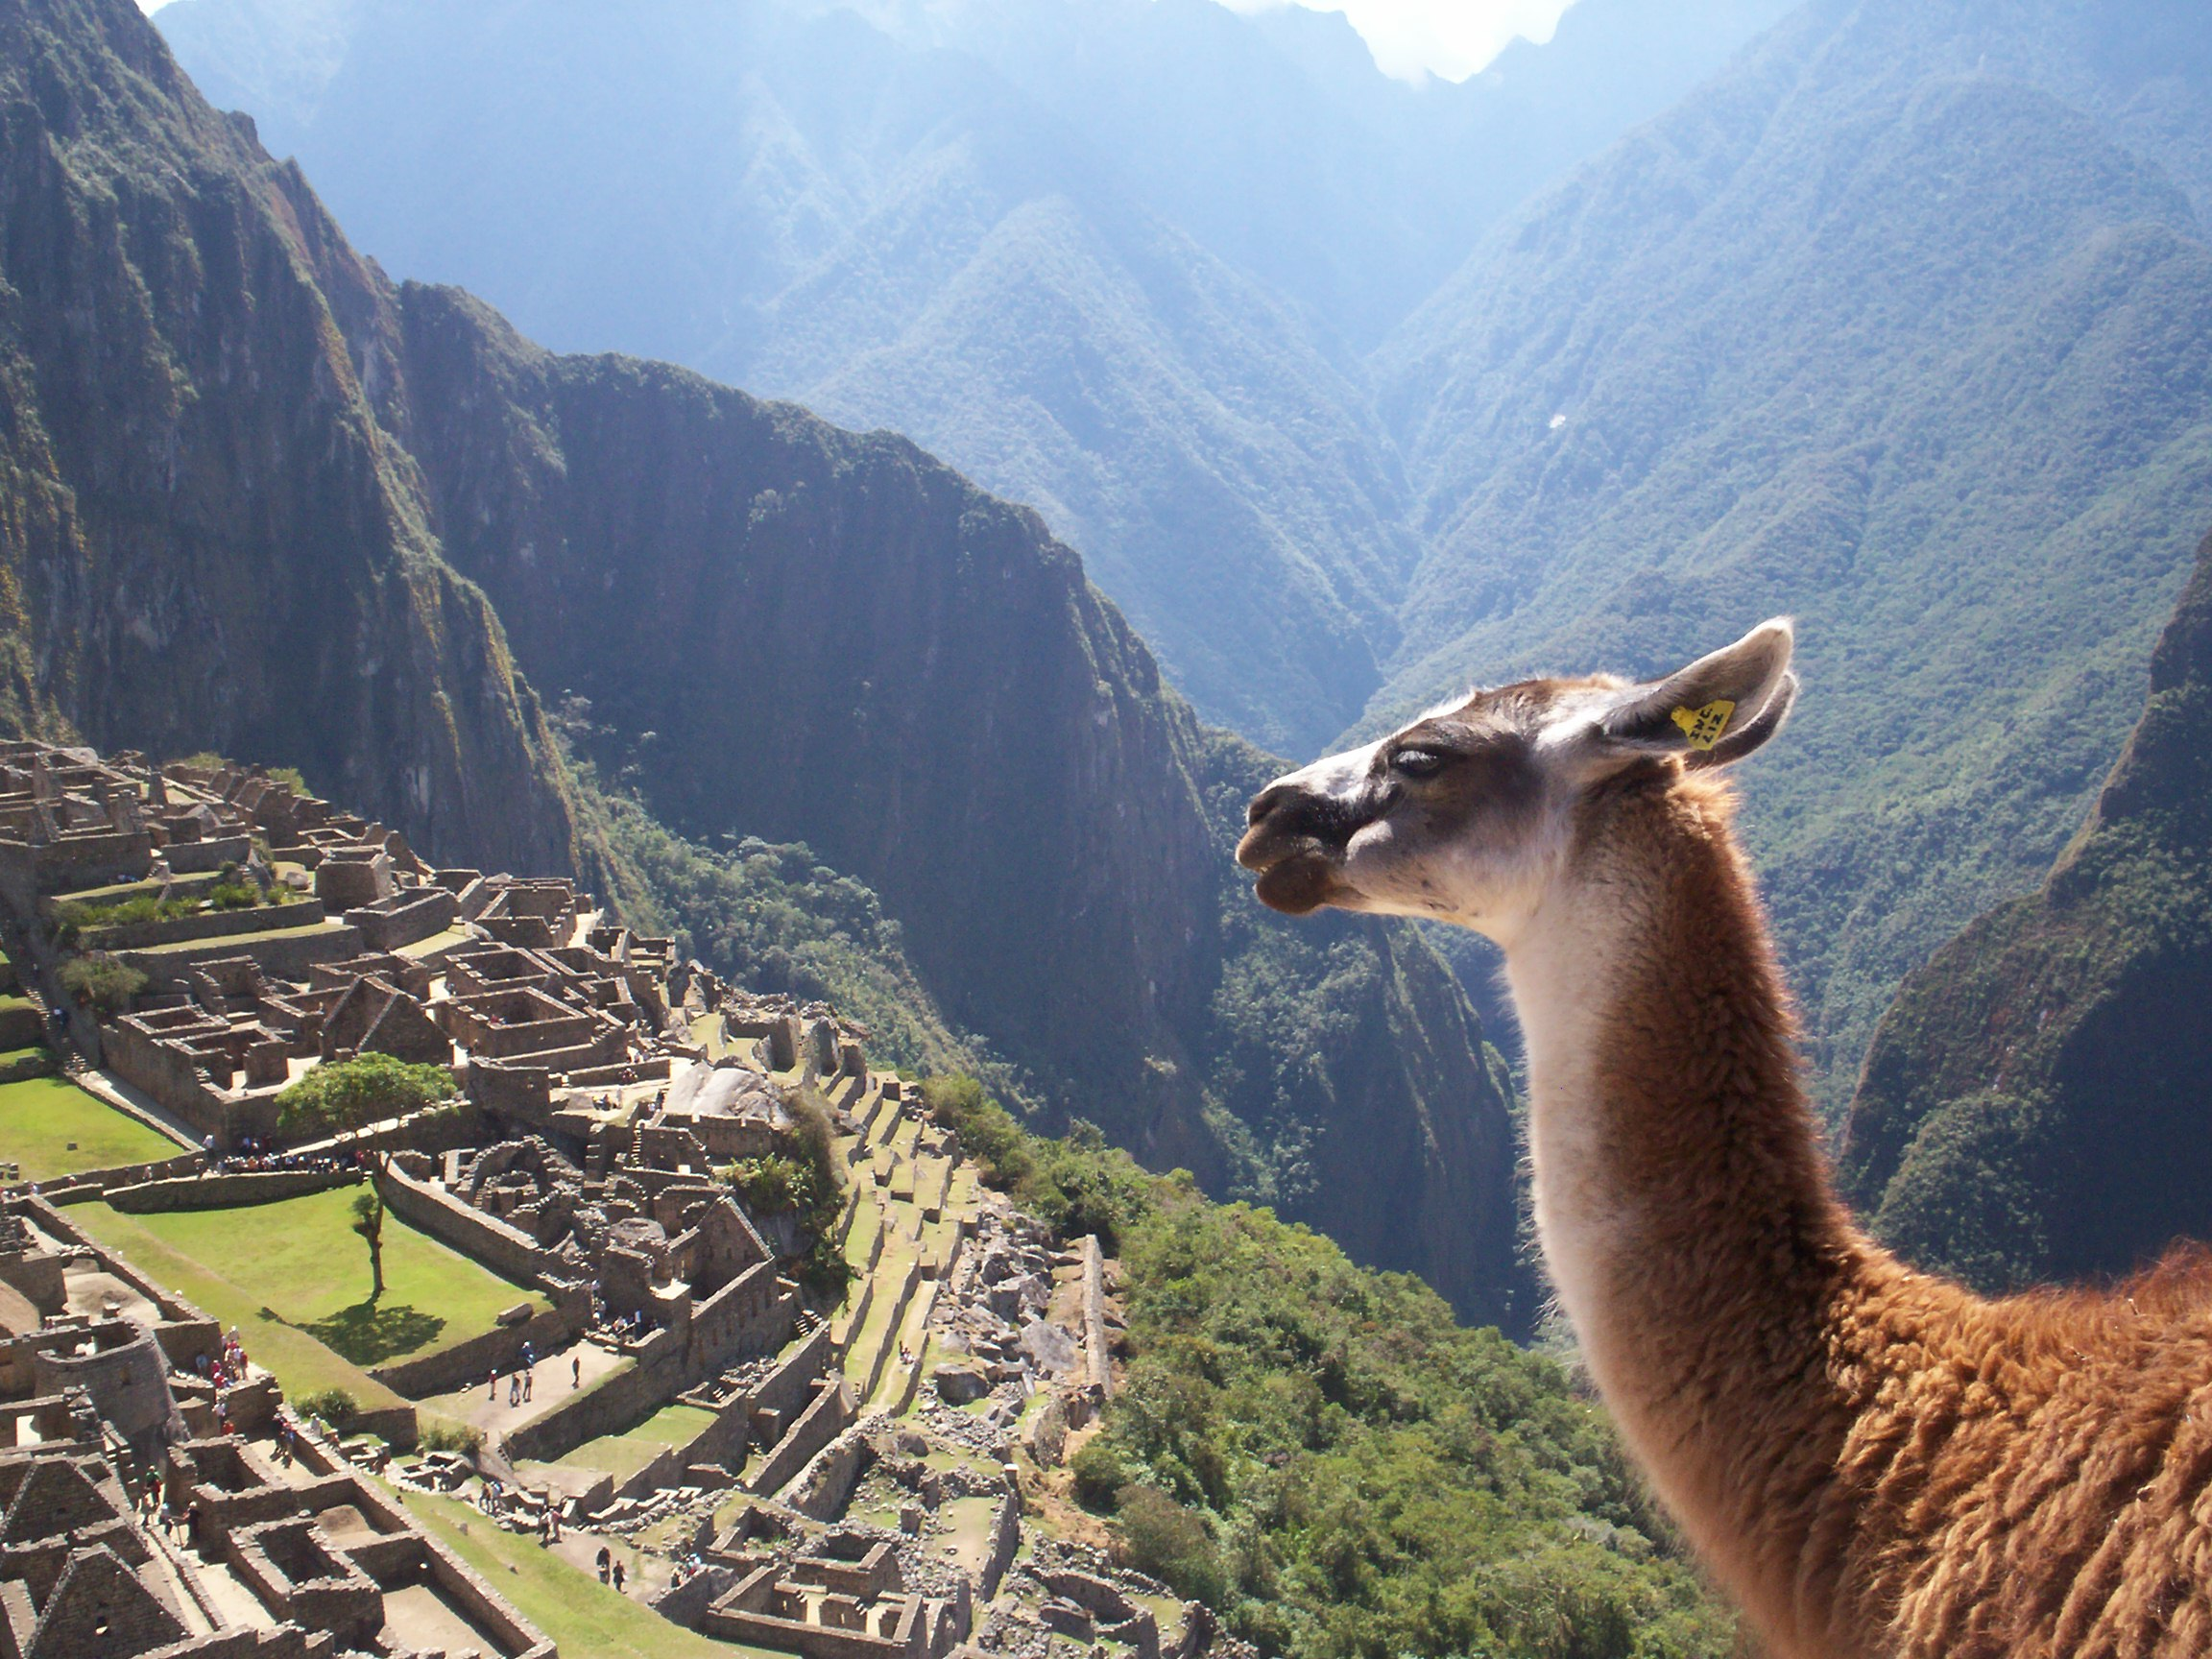 Peru from the perspective of a Peruvian